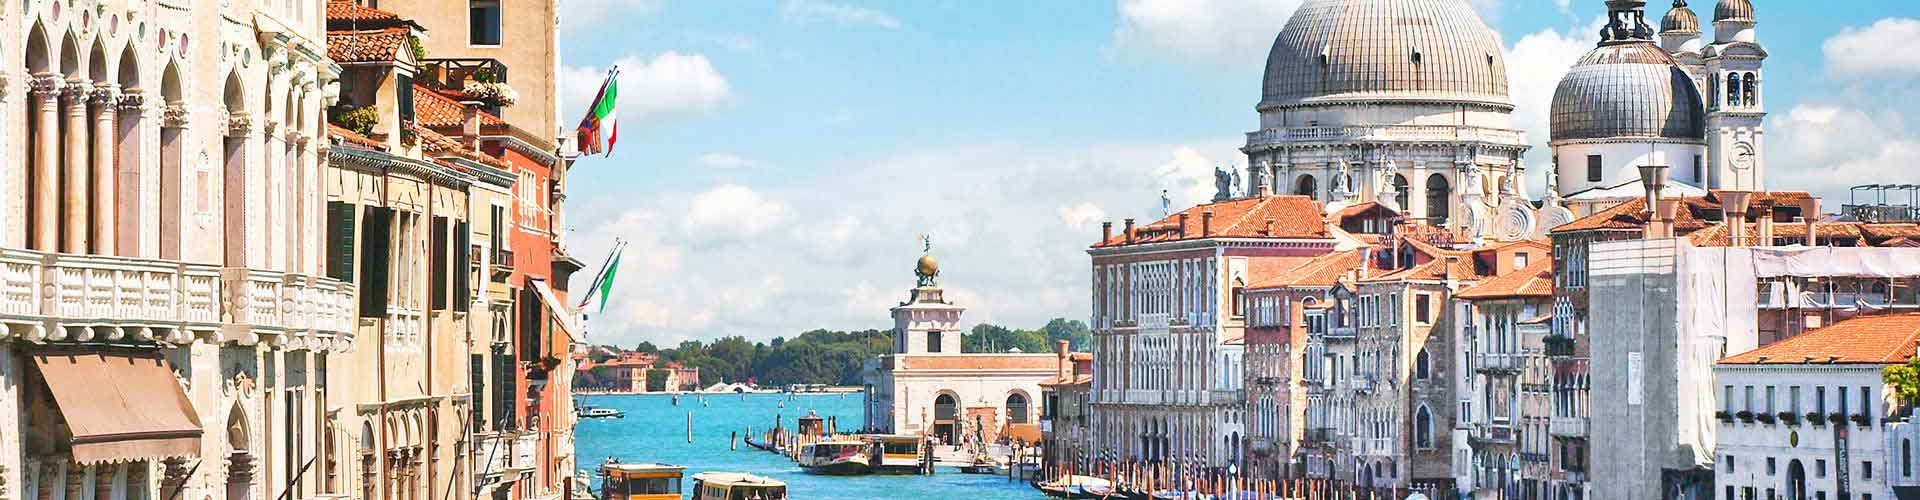 Venice – Hostels in Sestiere S. Croce. Maps of Venice, Photos and Reviews for each Hostel in Venice.